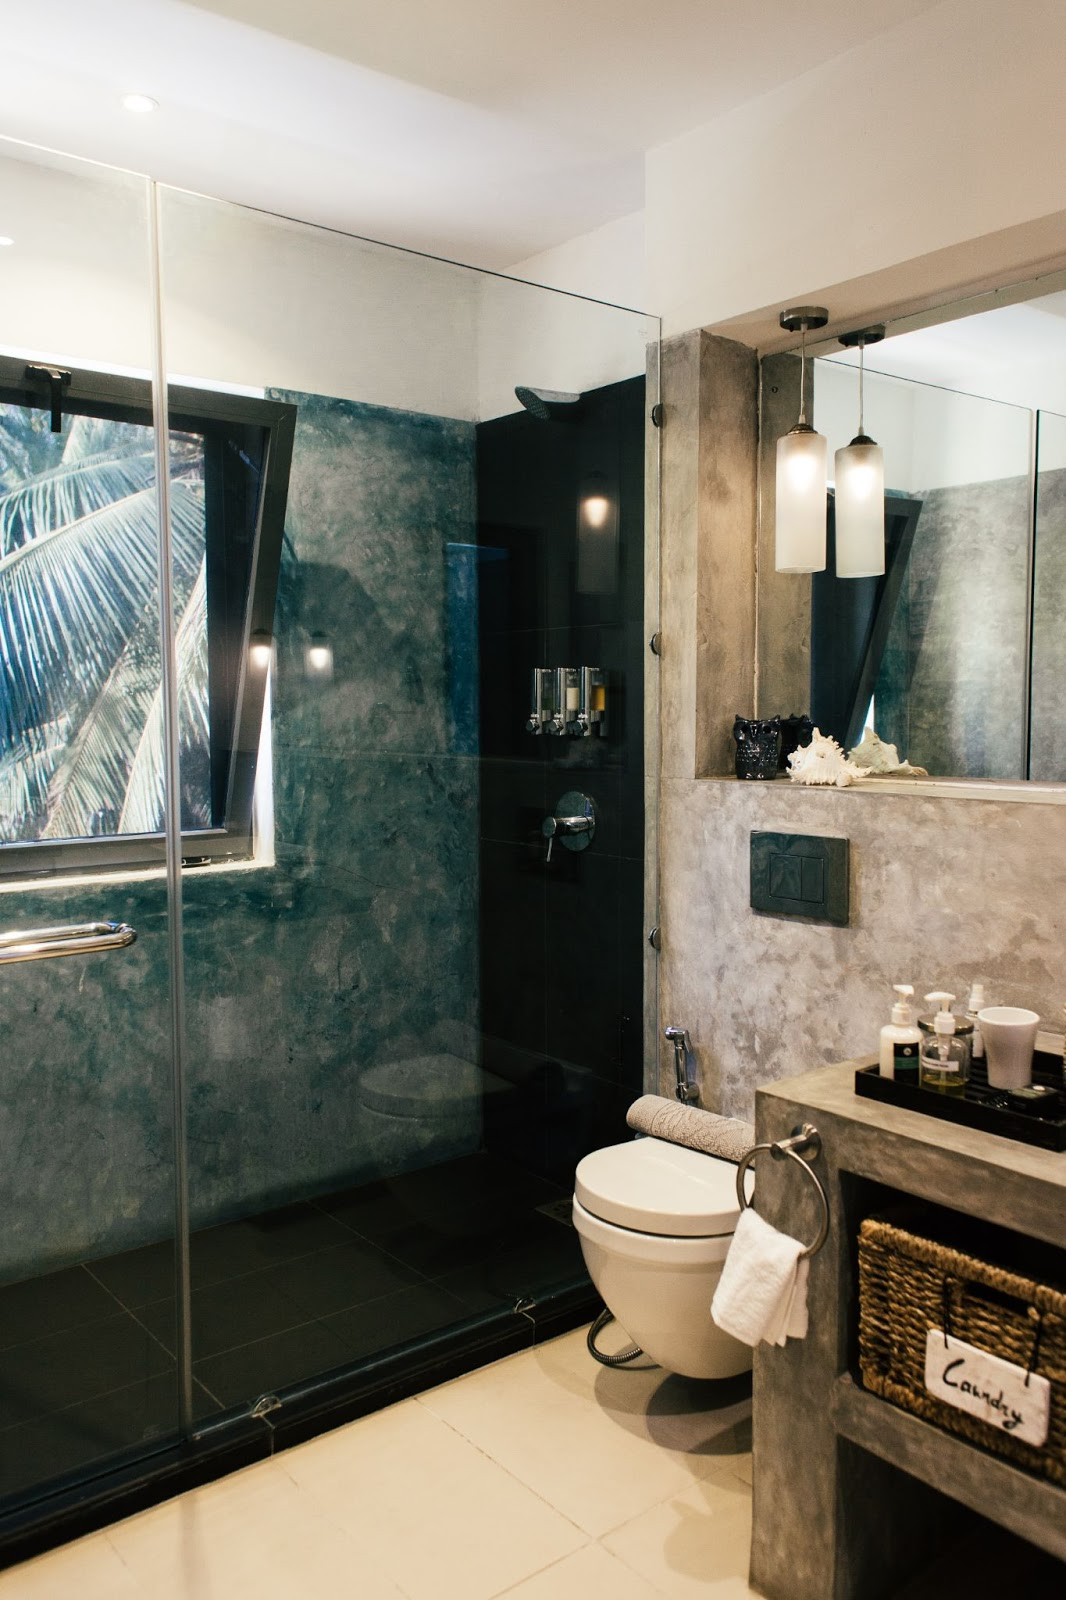 Choosing the right thickness for the glass in your shower doors